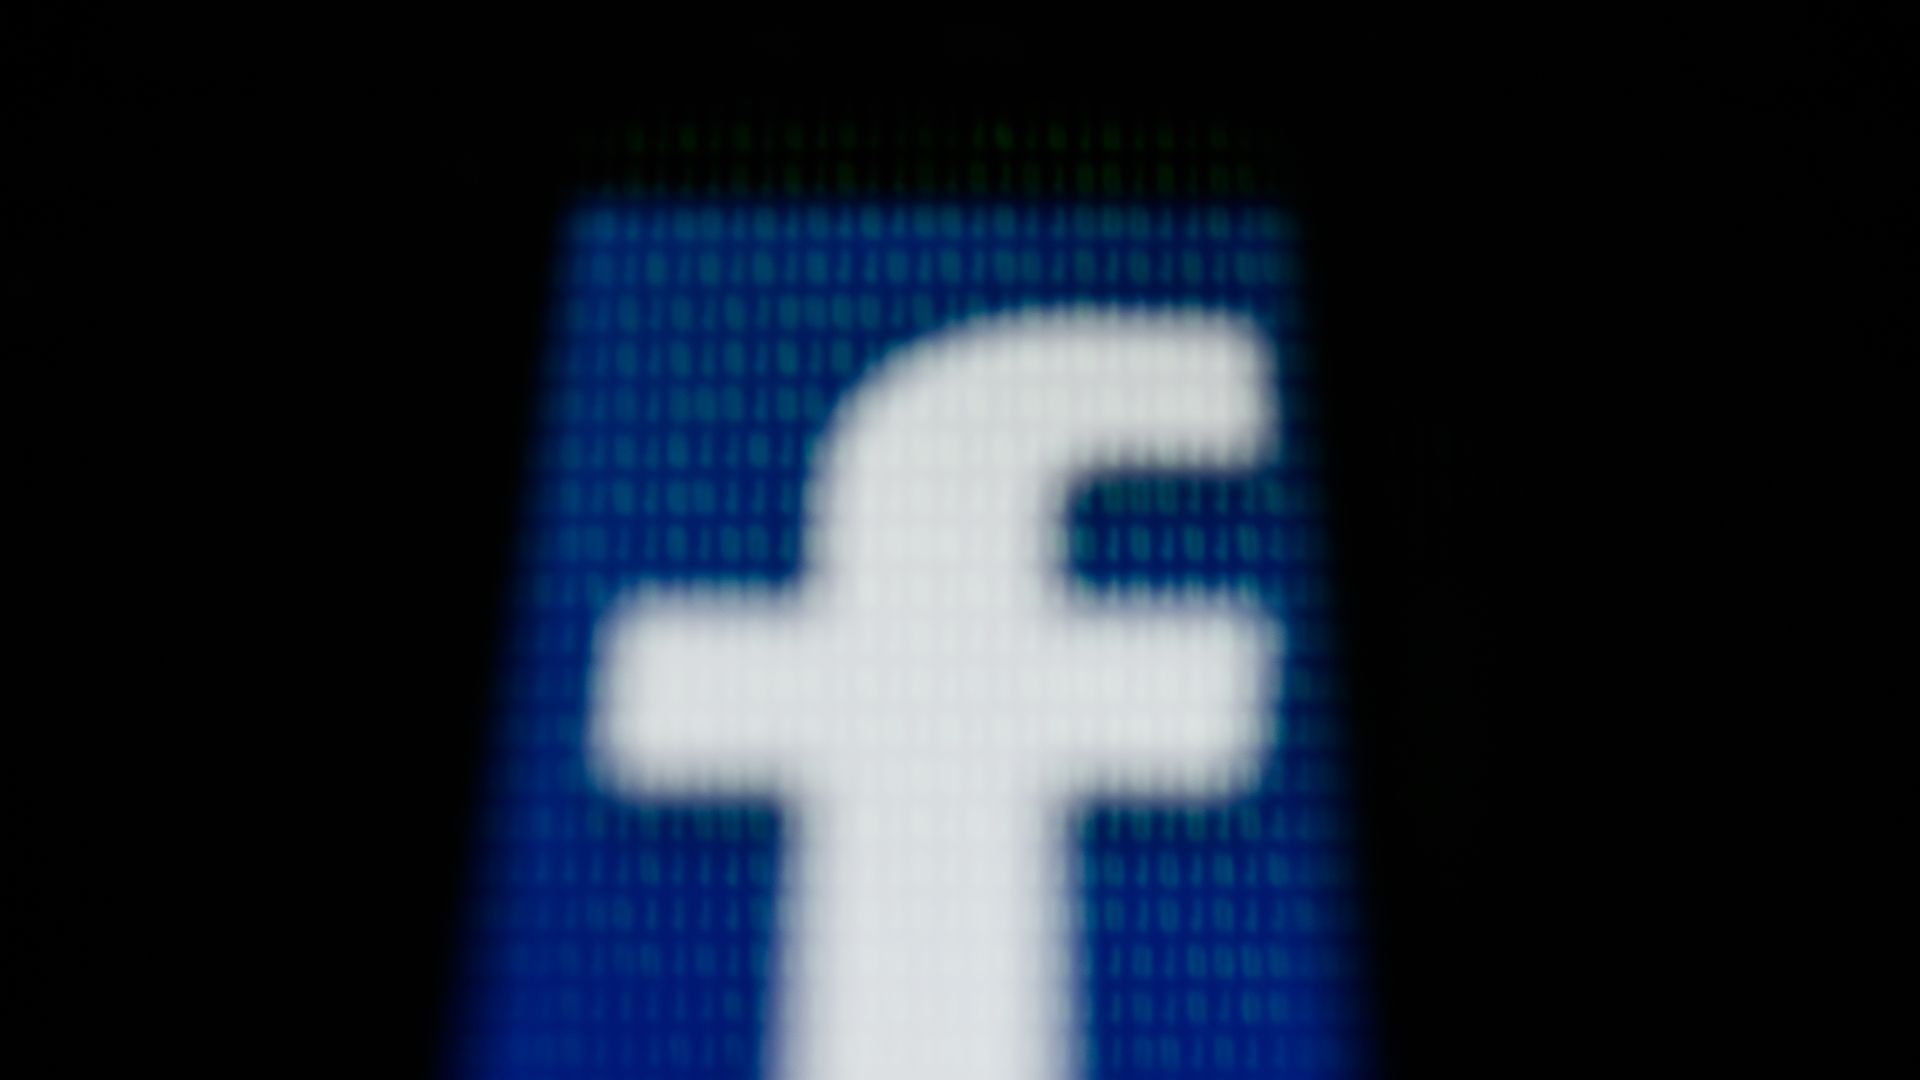 b71a30487b Facebook collected email contacts of 1.5 million users without permission